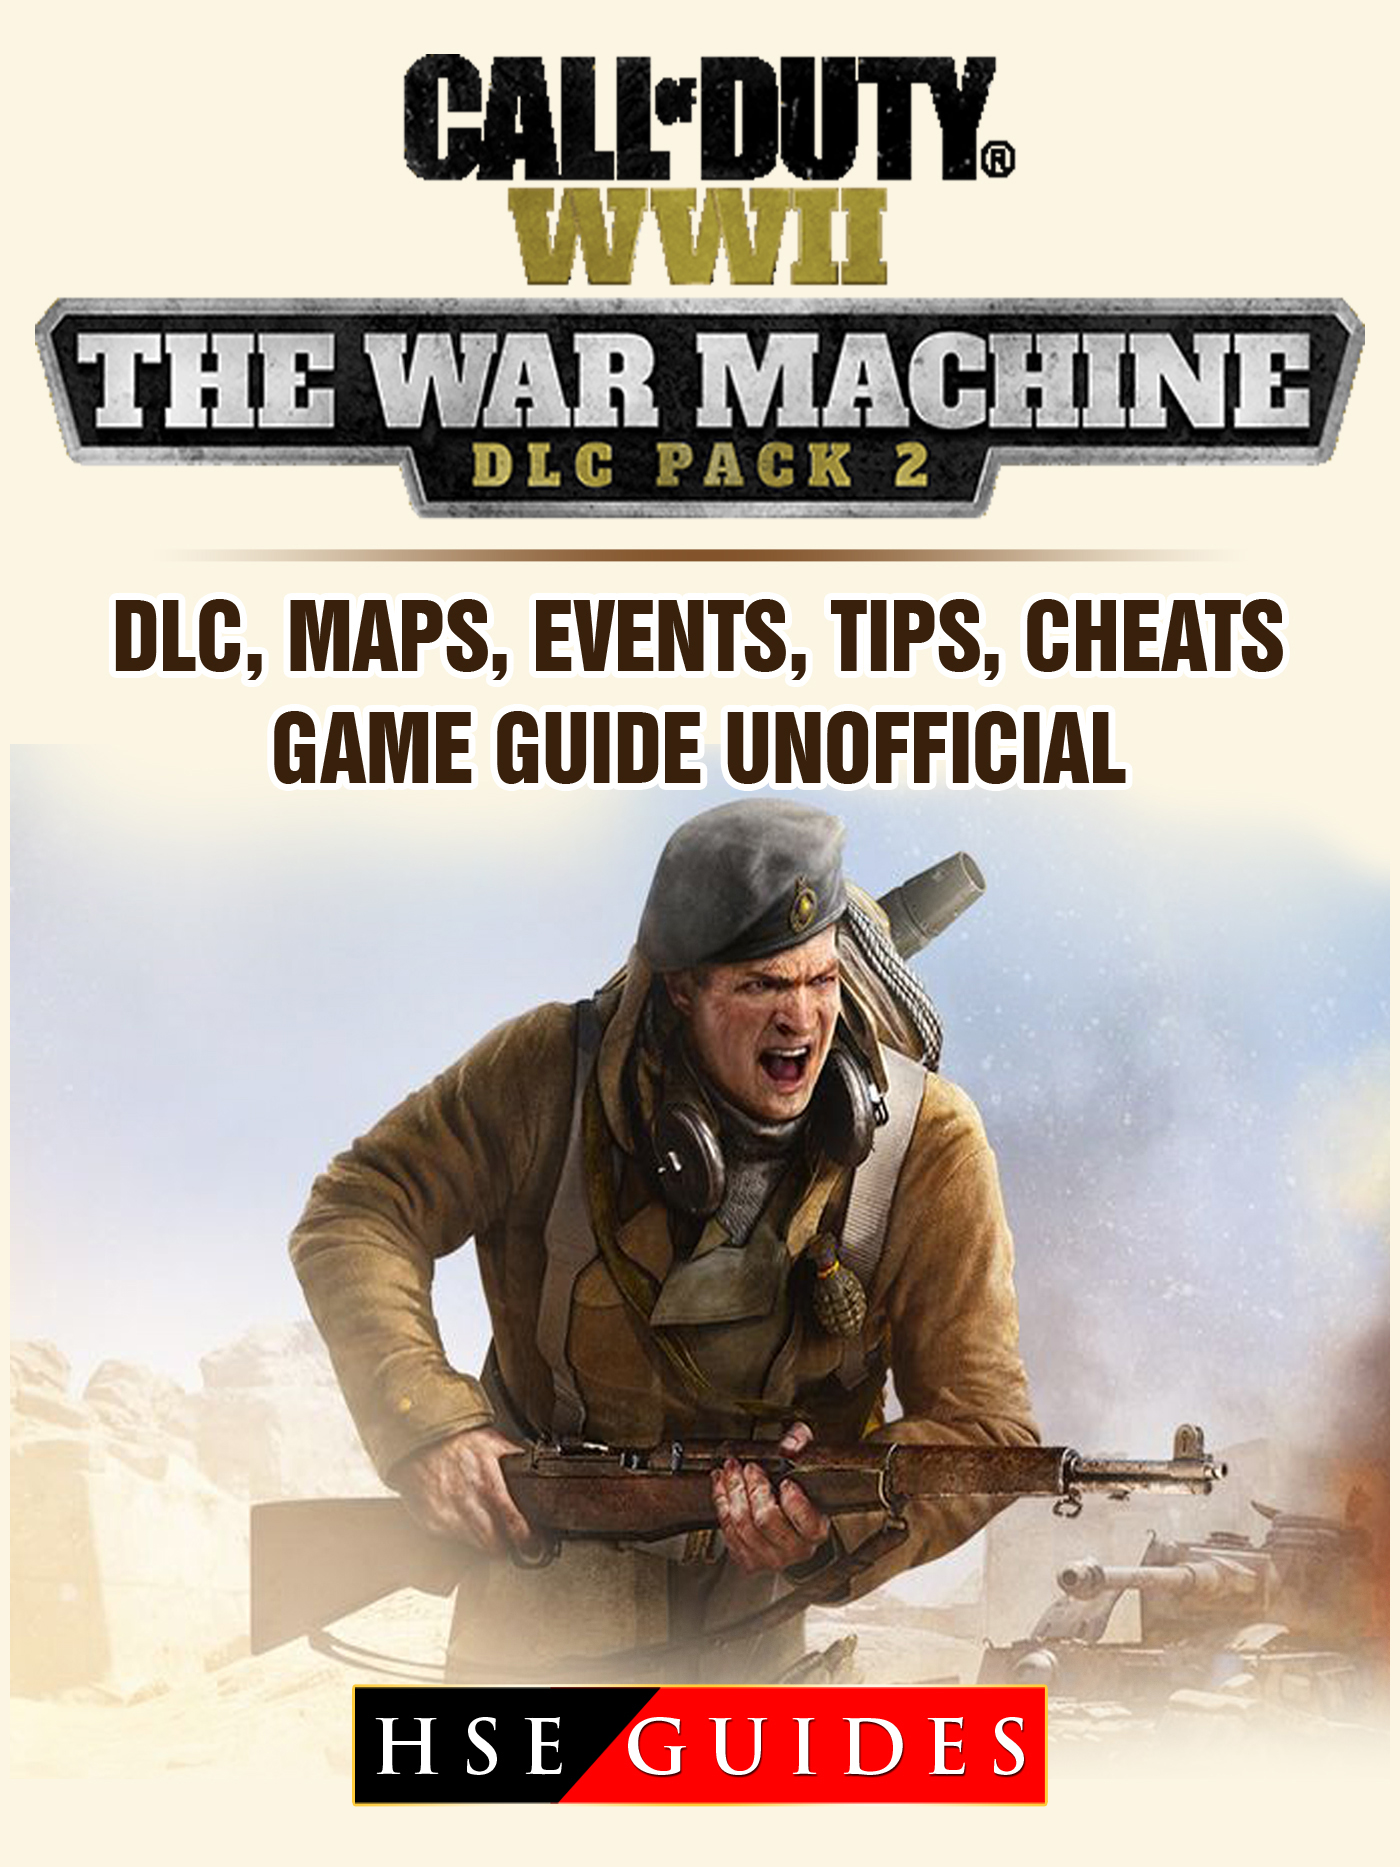 Call of Duty WWII The War Machine DLC Pack 2, DLC, Maps, Events, Tips, Cheats, Game Guide Unofficial By HSE Guides